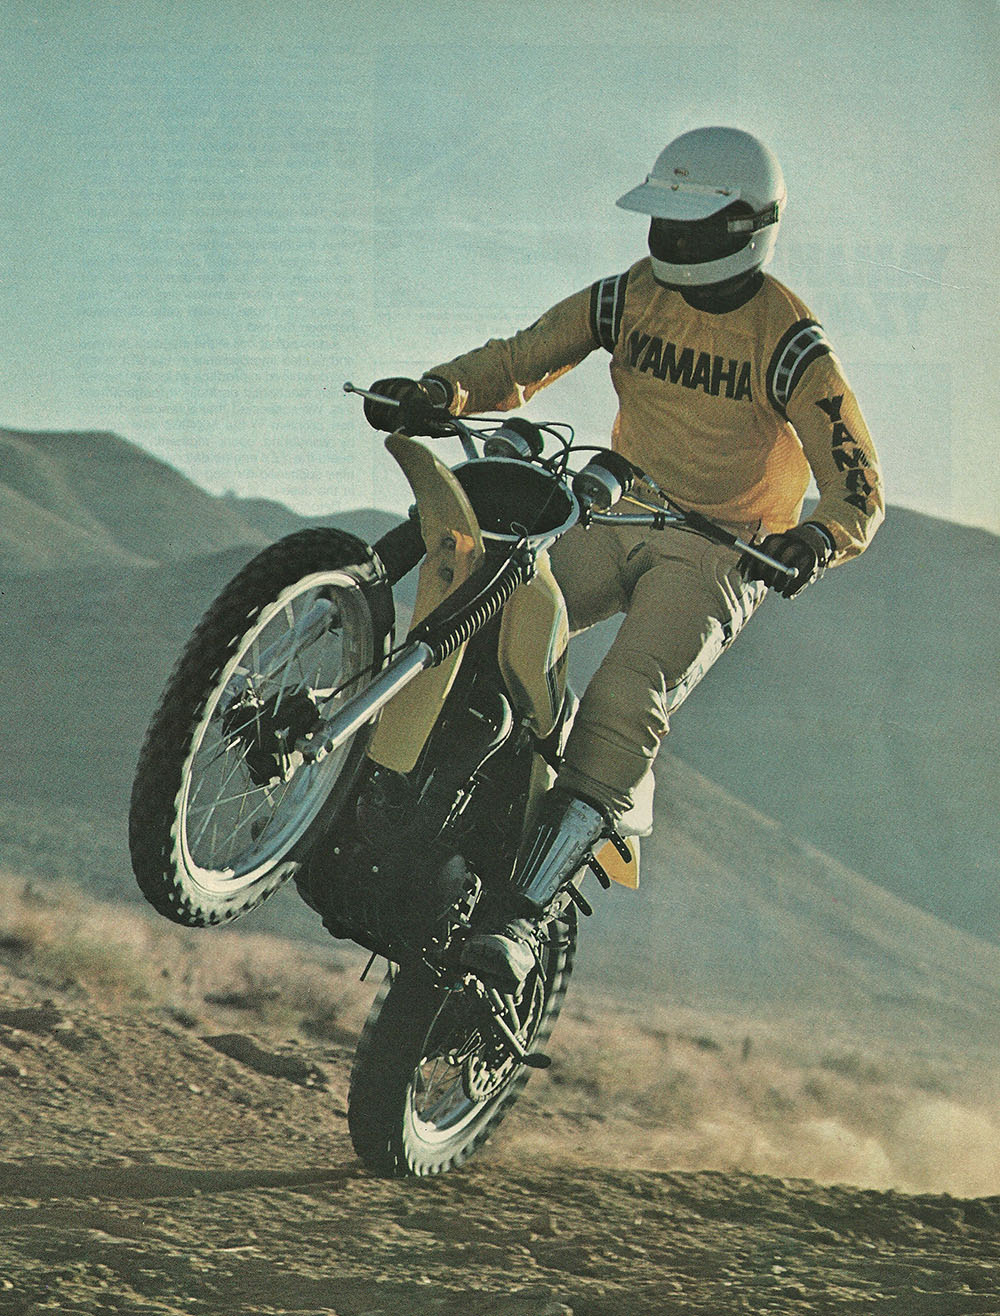 1976 Yamaha YZ400C off road test 2.JPG